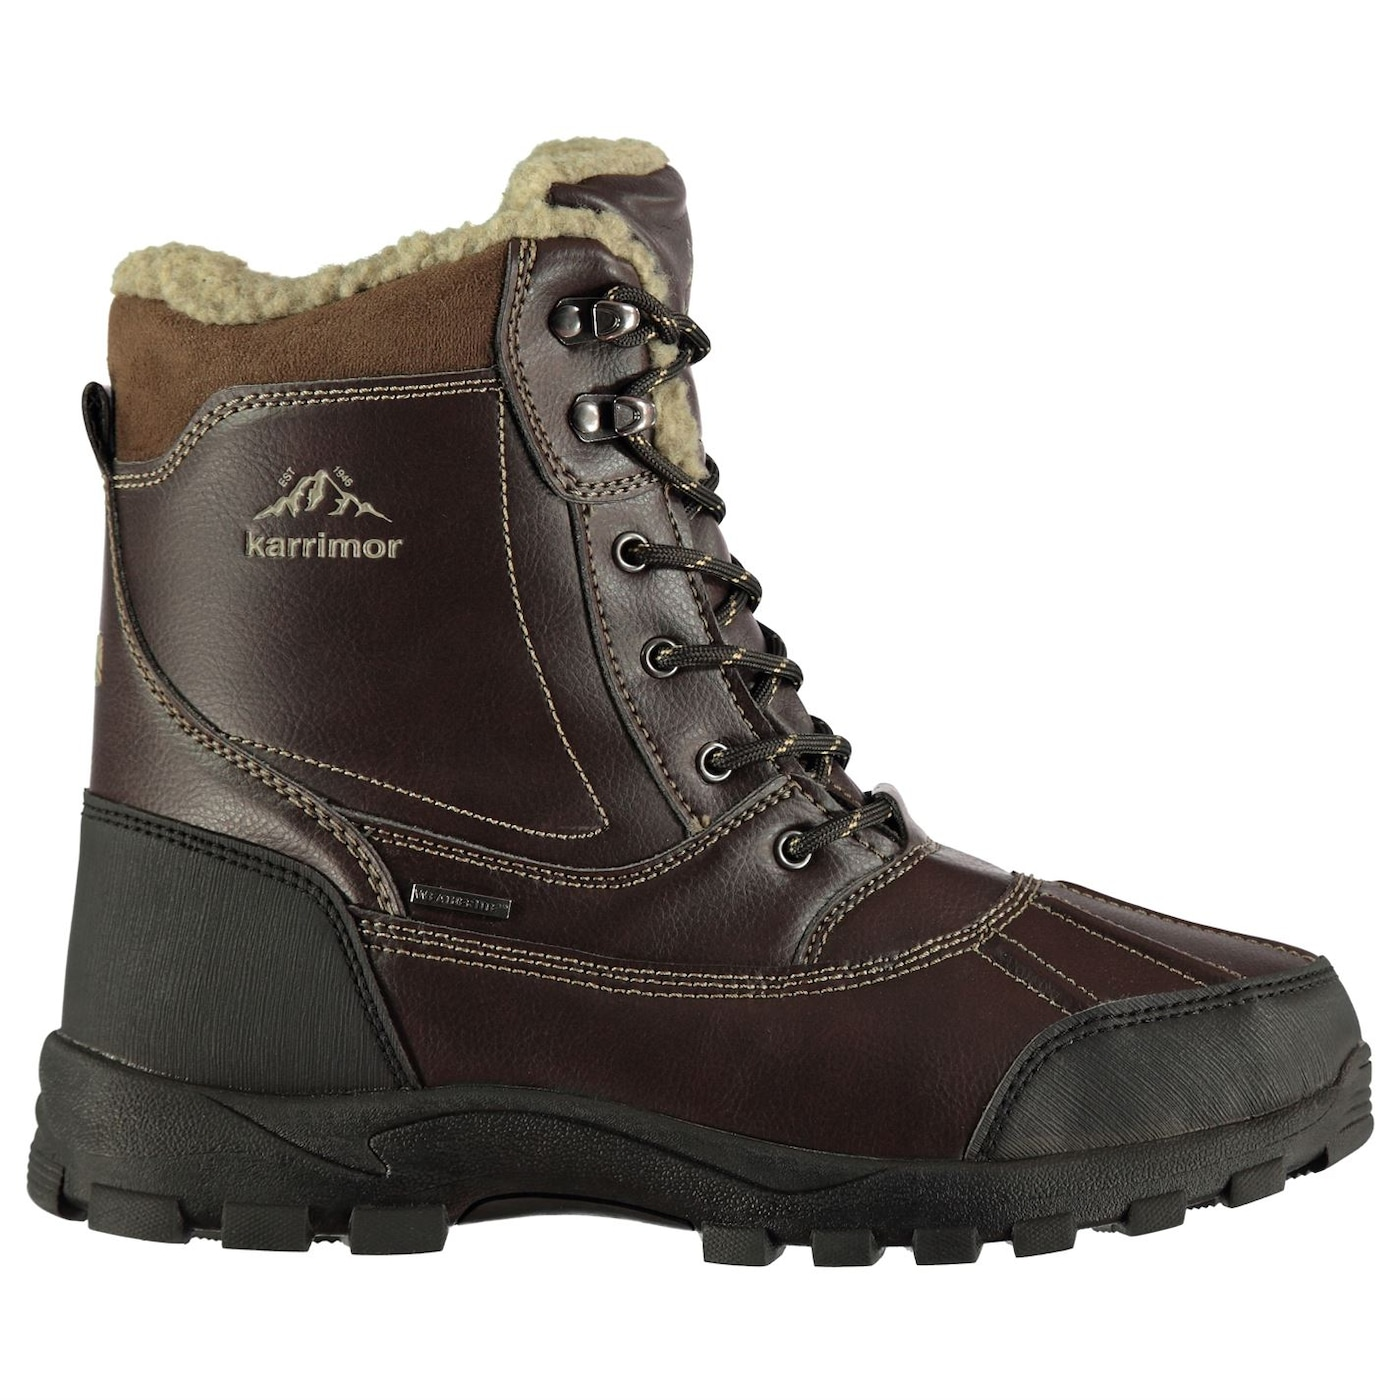 Karrimor Casual Mens Snow Boots